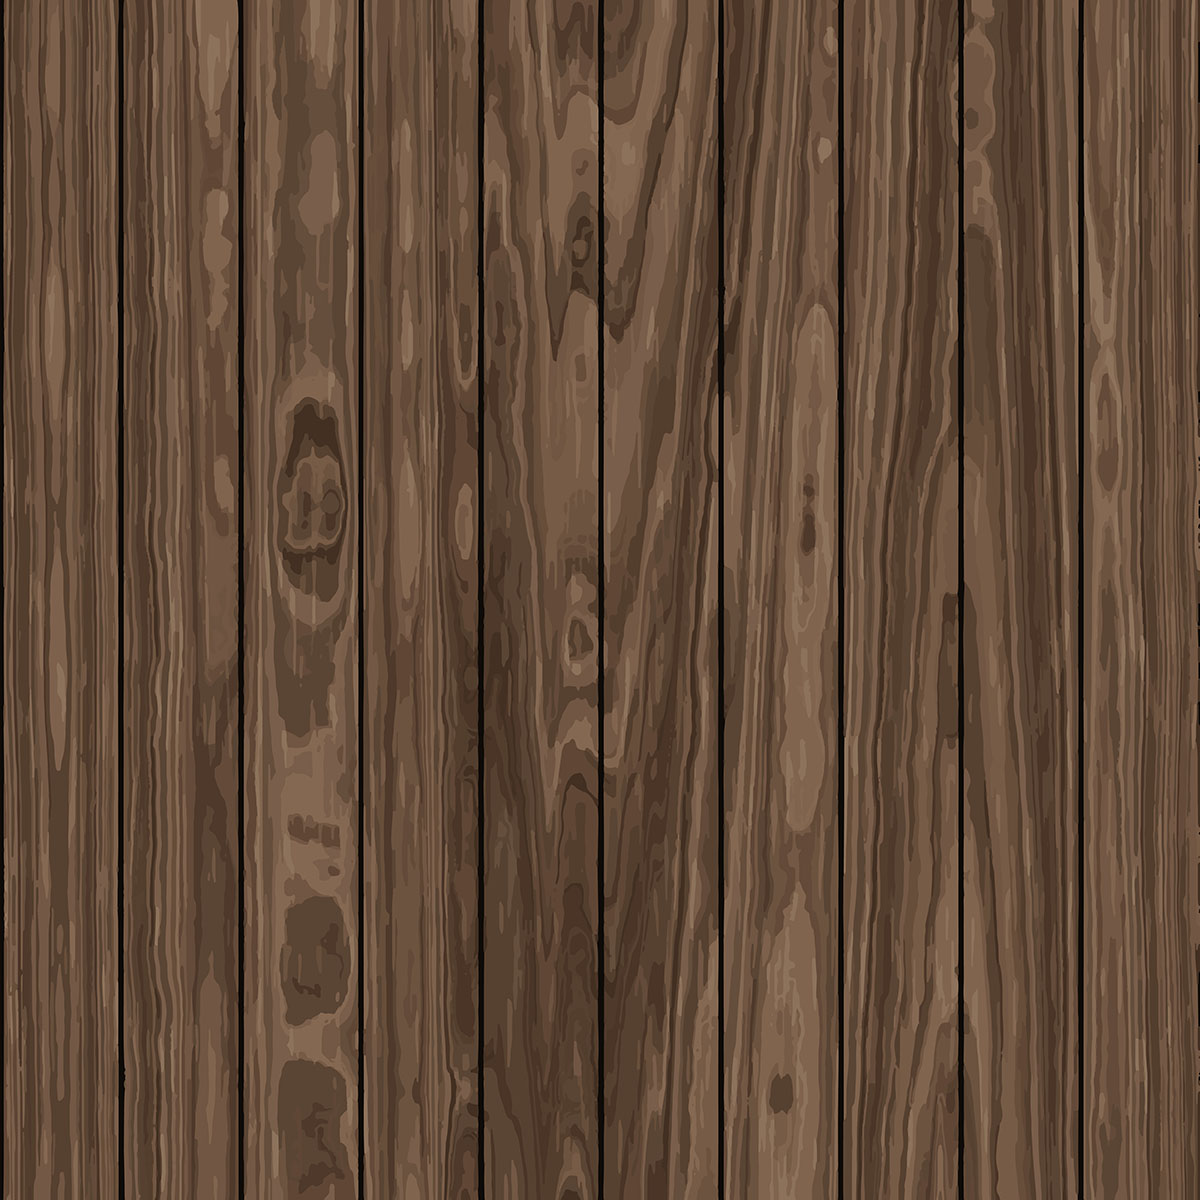 Grunge Wood Texture Background Download Free Vectors